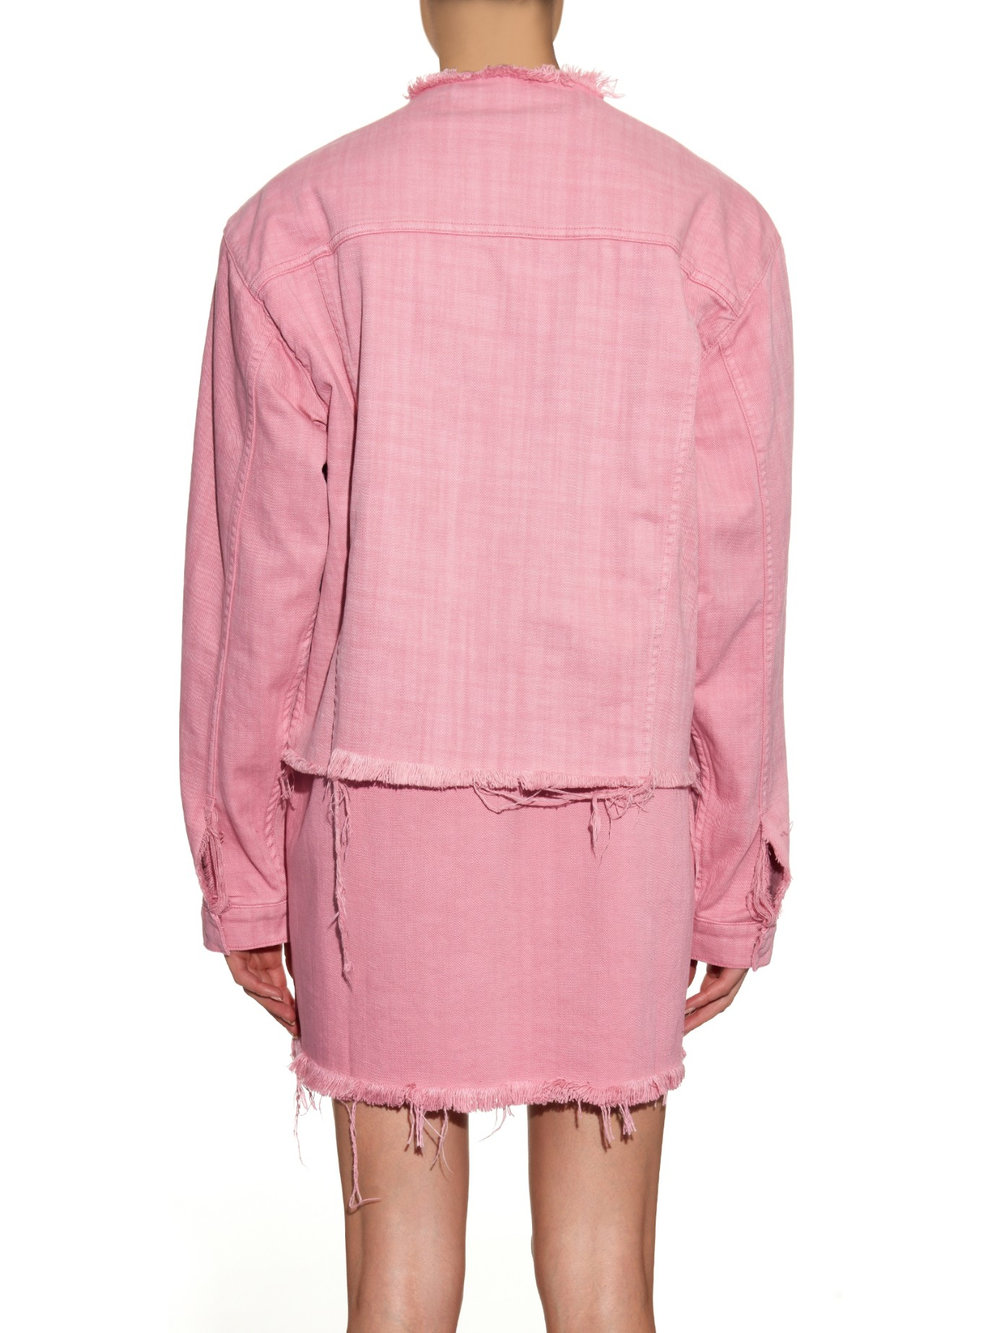 marquesalmeida-pink-oversized-frayed-denim-jacket-product-1-131570249-normal.jpeg